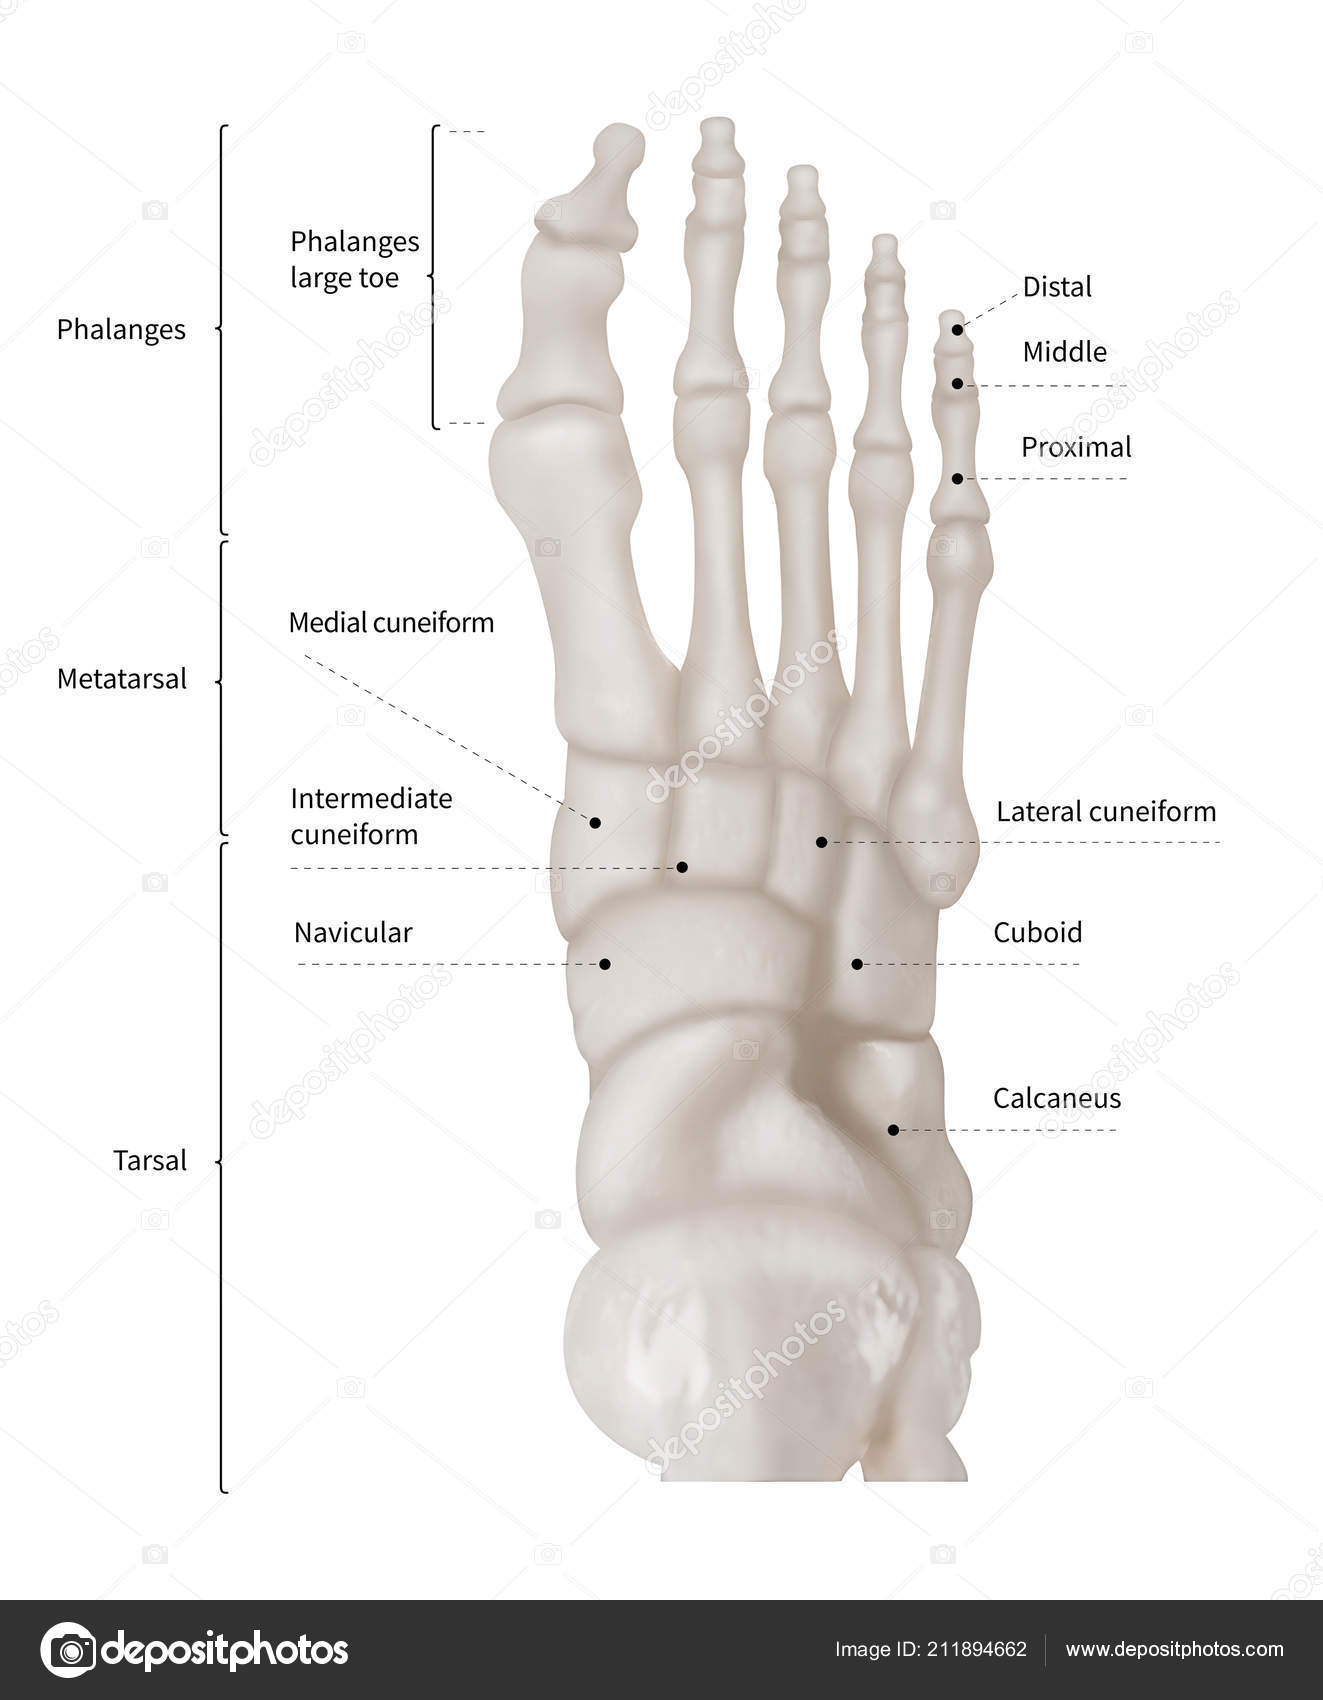 hight resolution of infographic diagram of human foot bone anatomy system anterior view 3d human anatomy medical diagram educational and human body concept isolated on